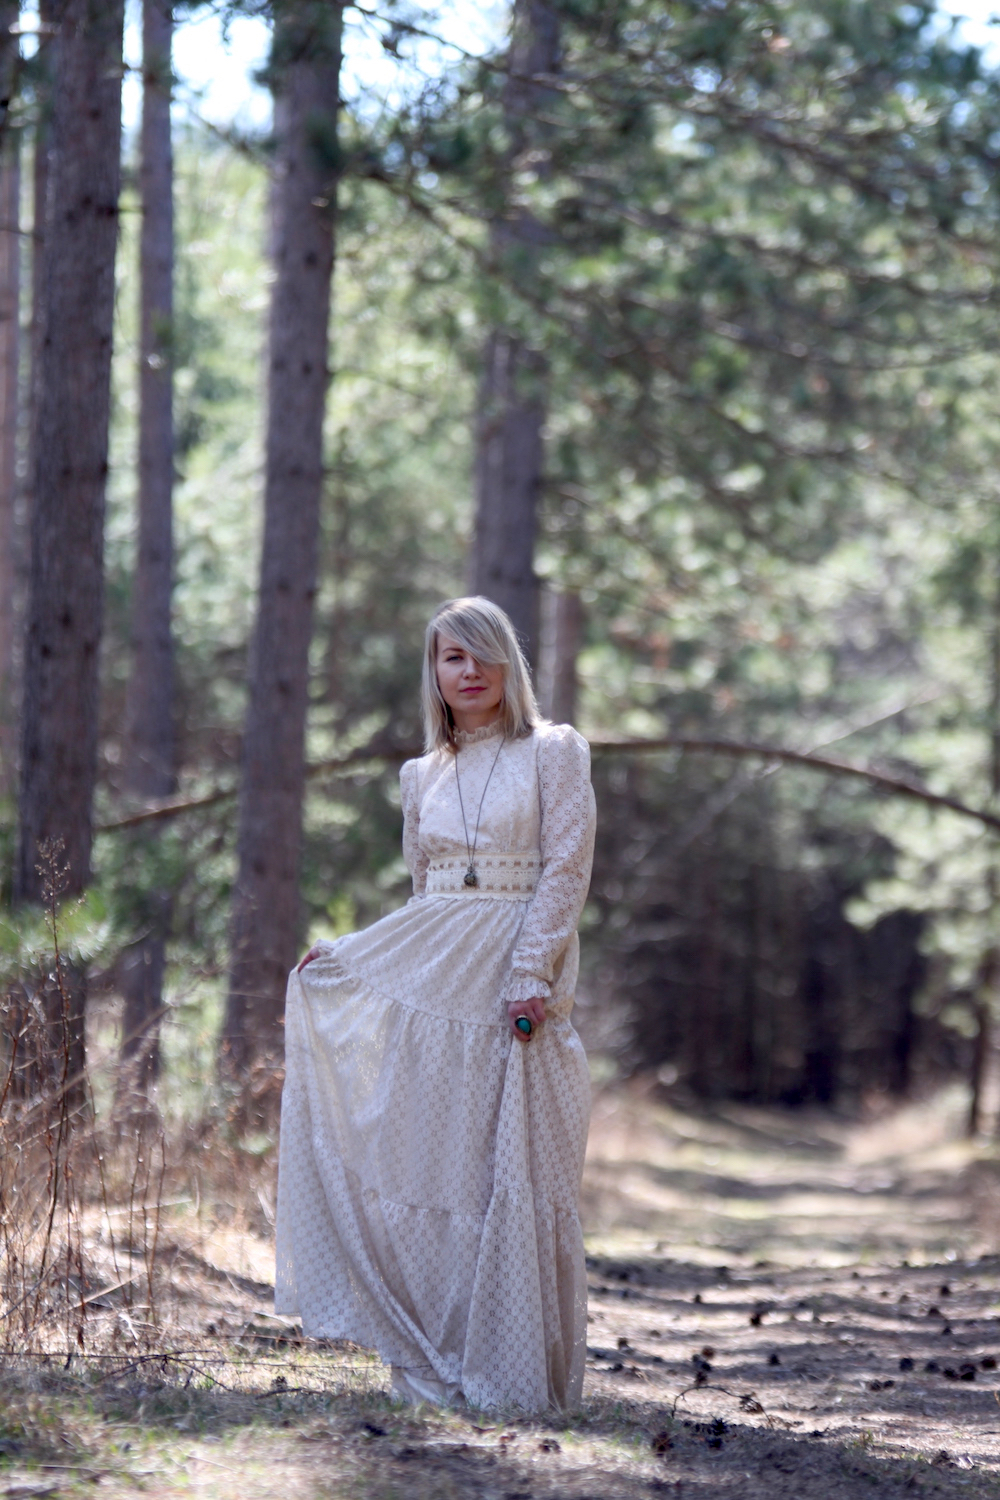 70's vintage lace gown in forest